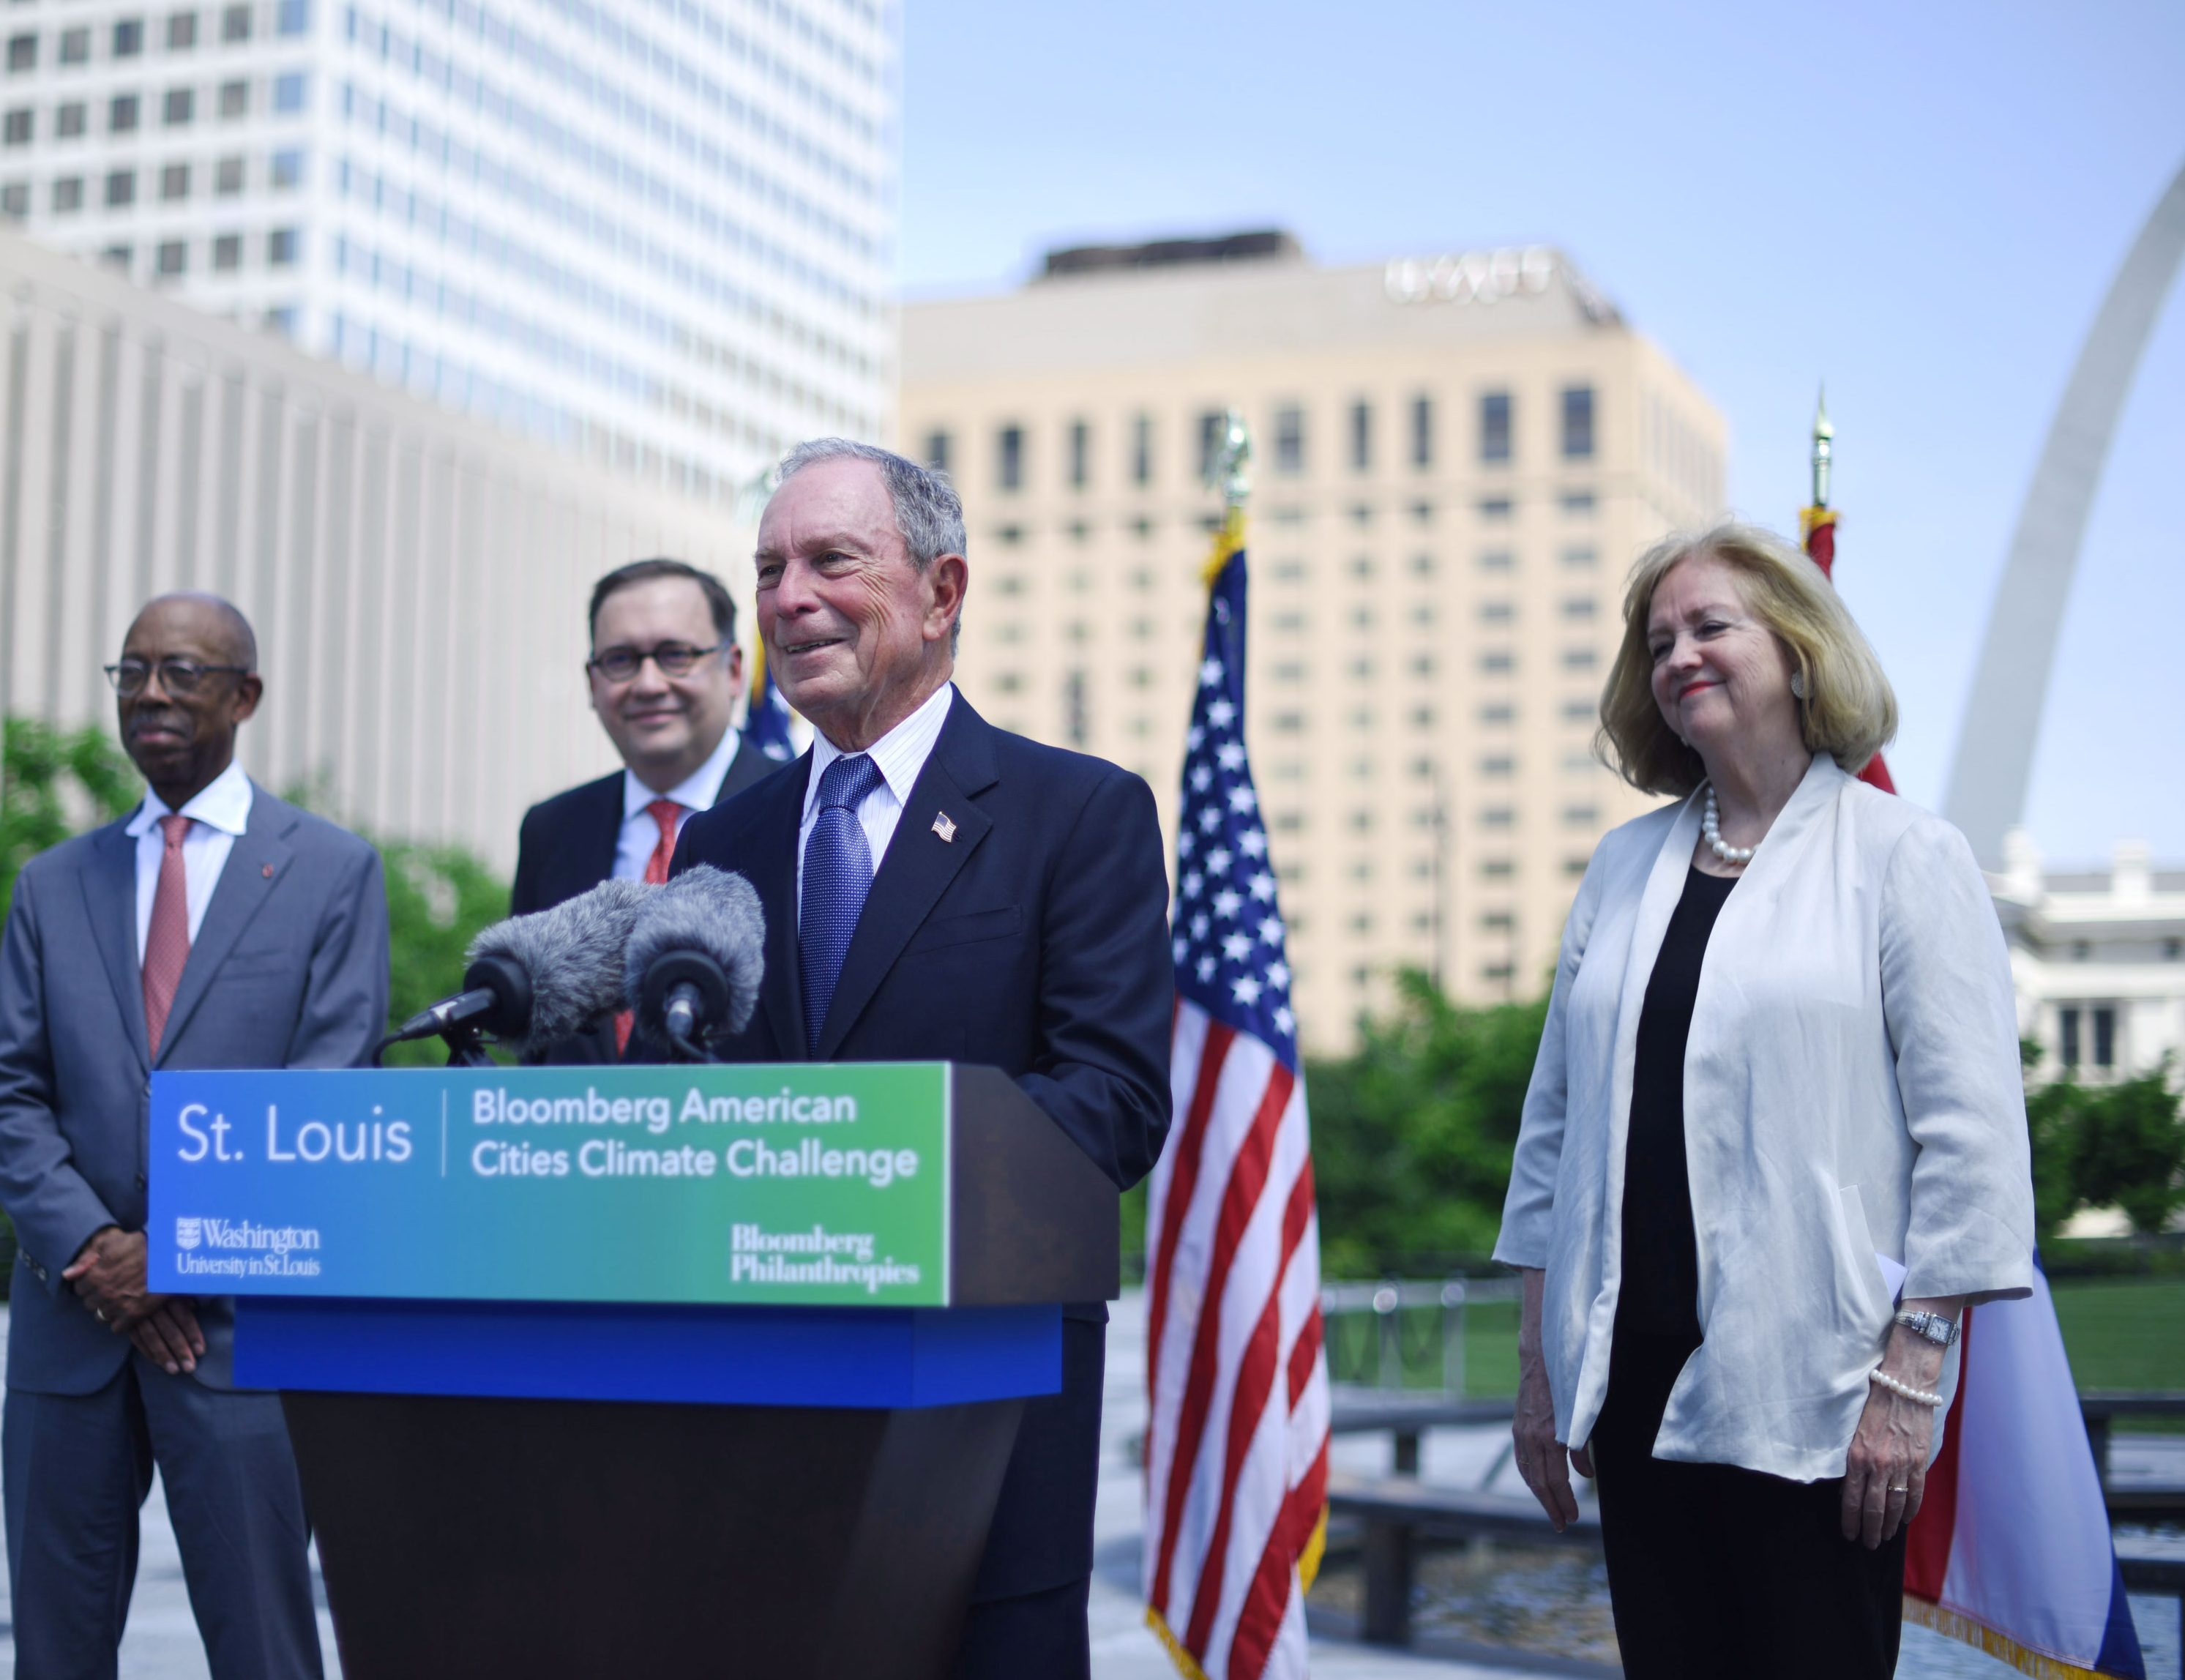 Mike Bloomberg announces St. Louis as a winner of the Bloomberg American Cities Climate Challenge